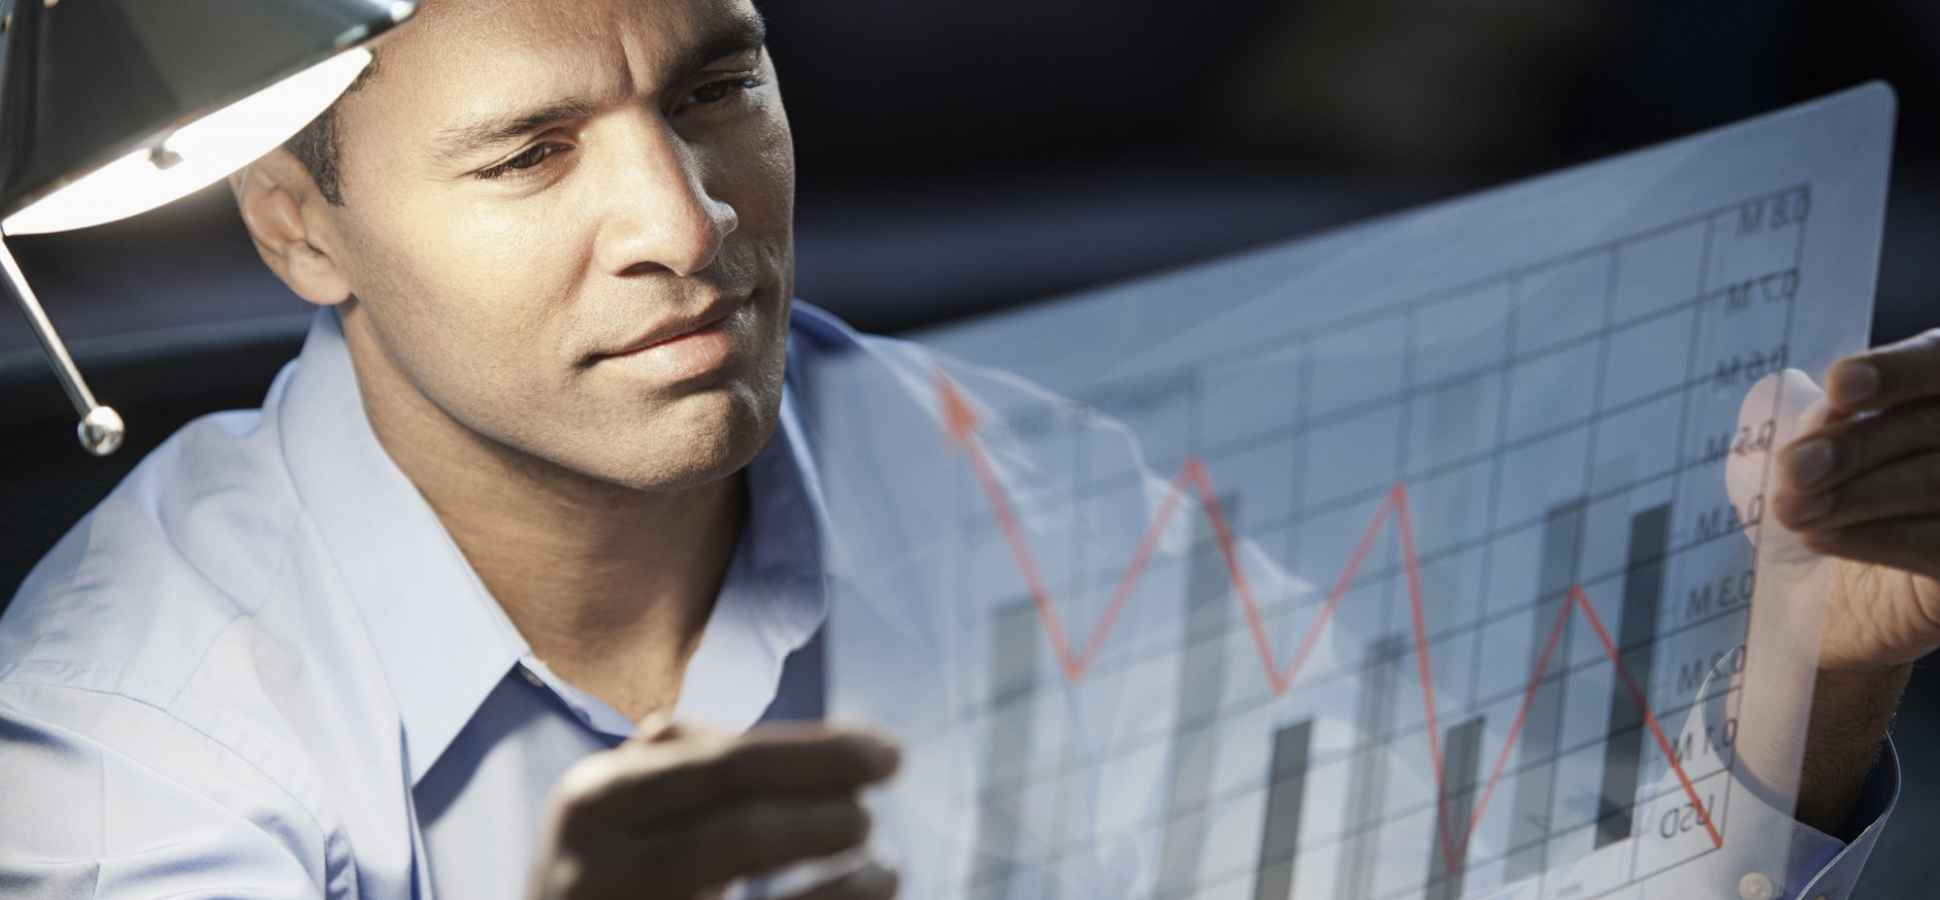 Follow These Economic Indicators to Grow Your Company